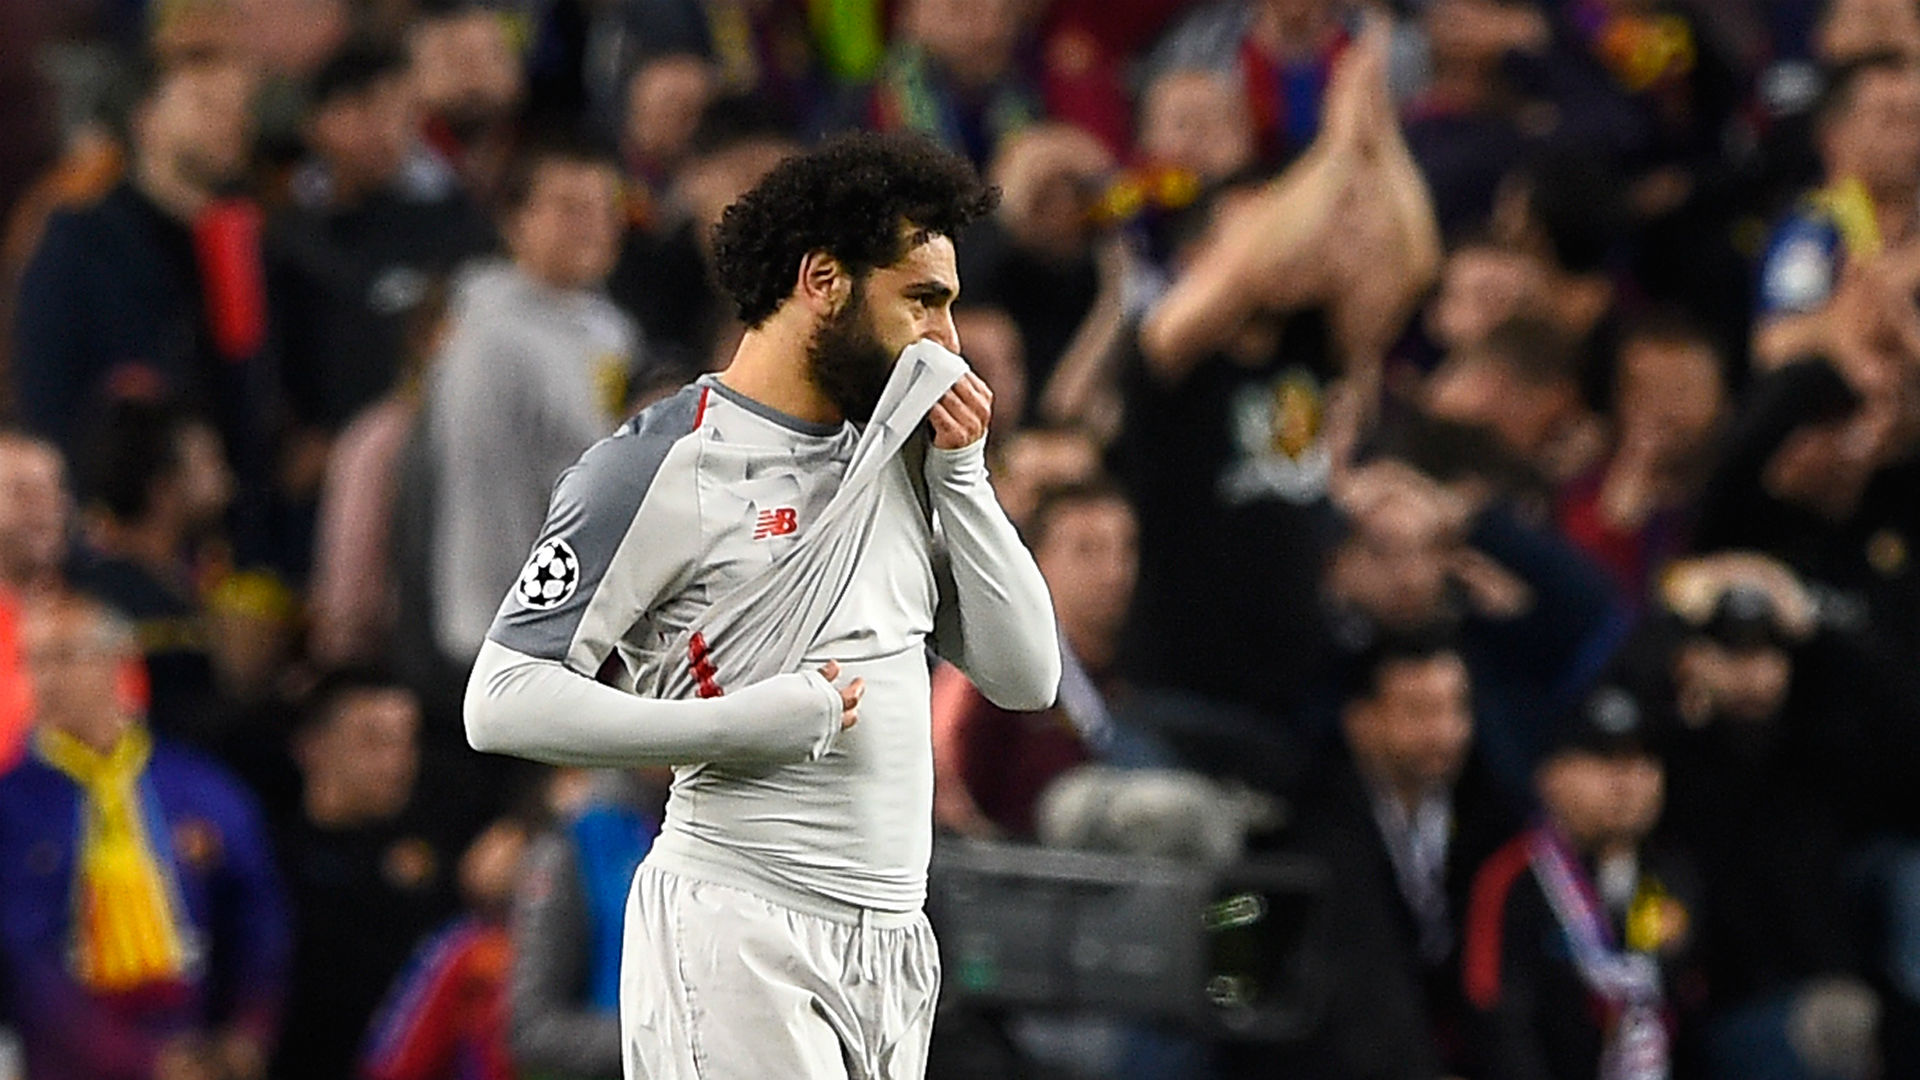 Liverpool's Firmino out of Barca visit, Salah at risk